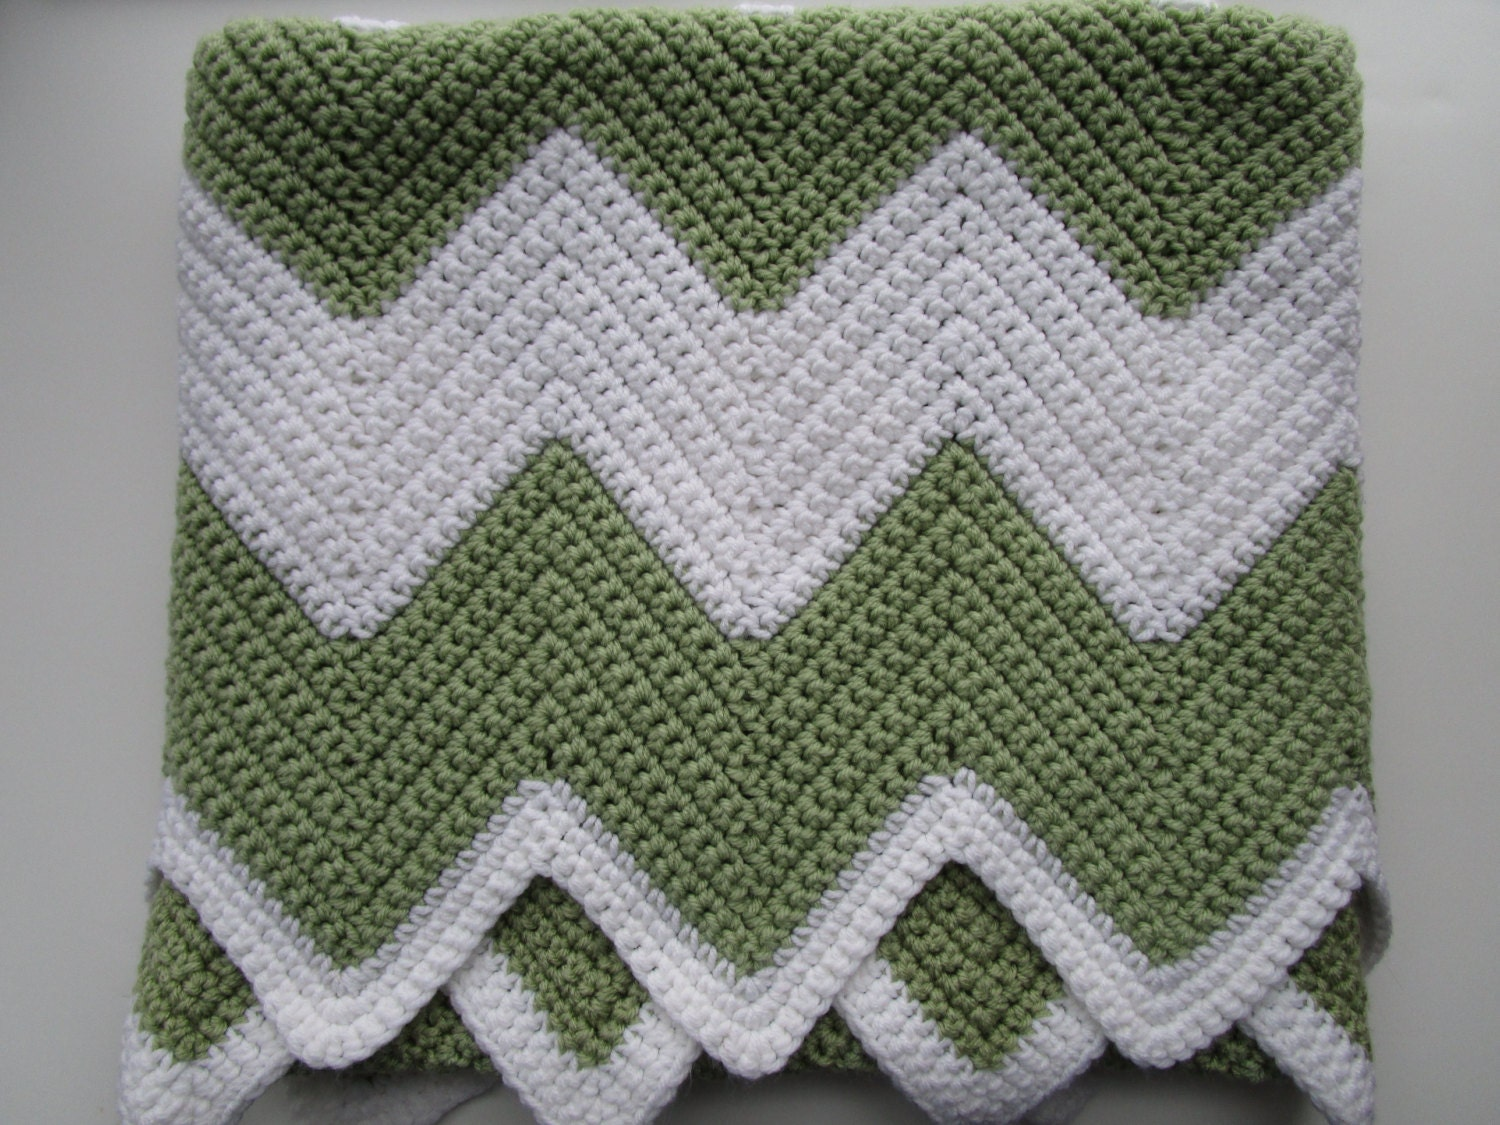 Free Crochet Pattern Baby Blanket Chevron : Crochet Chevron Baby Blanket www.galleryhip.com - The ...